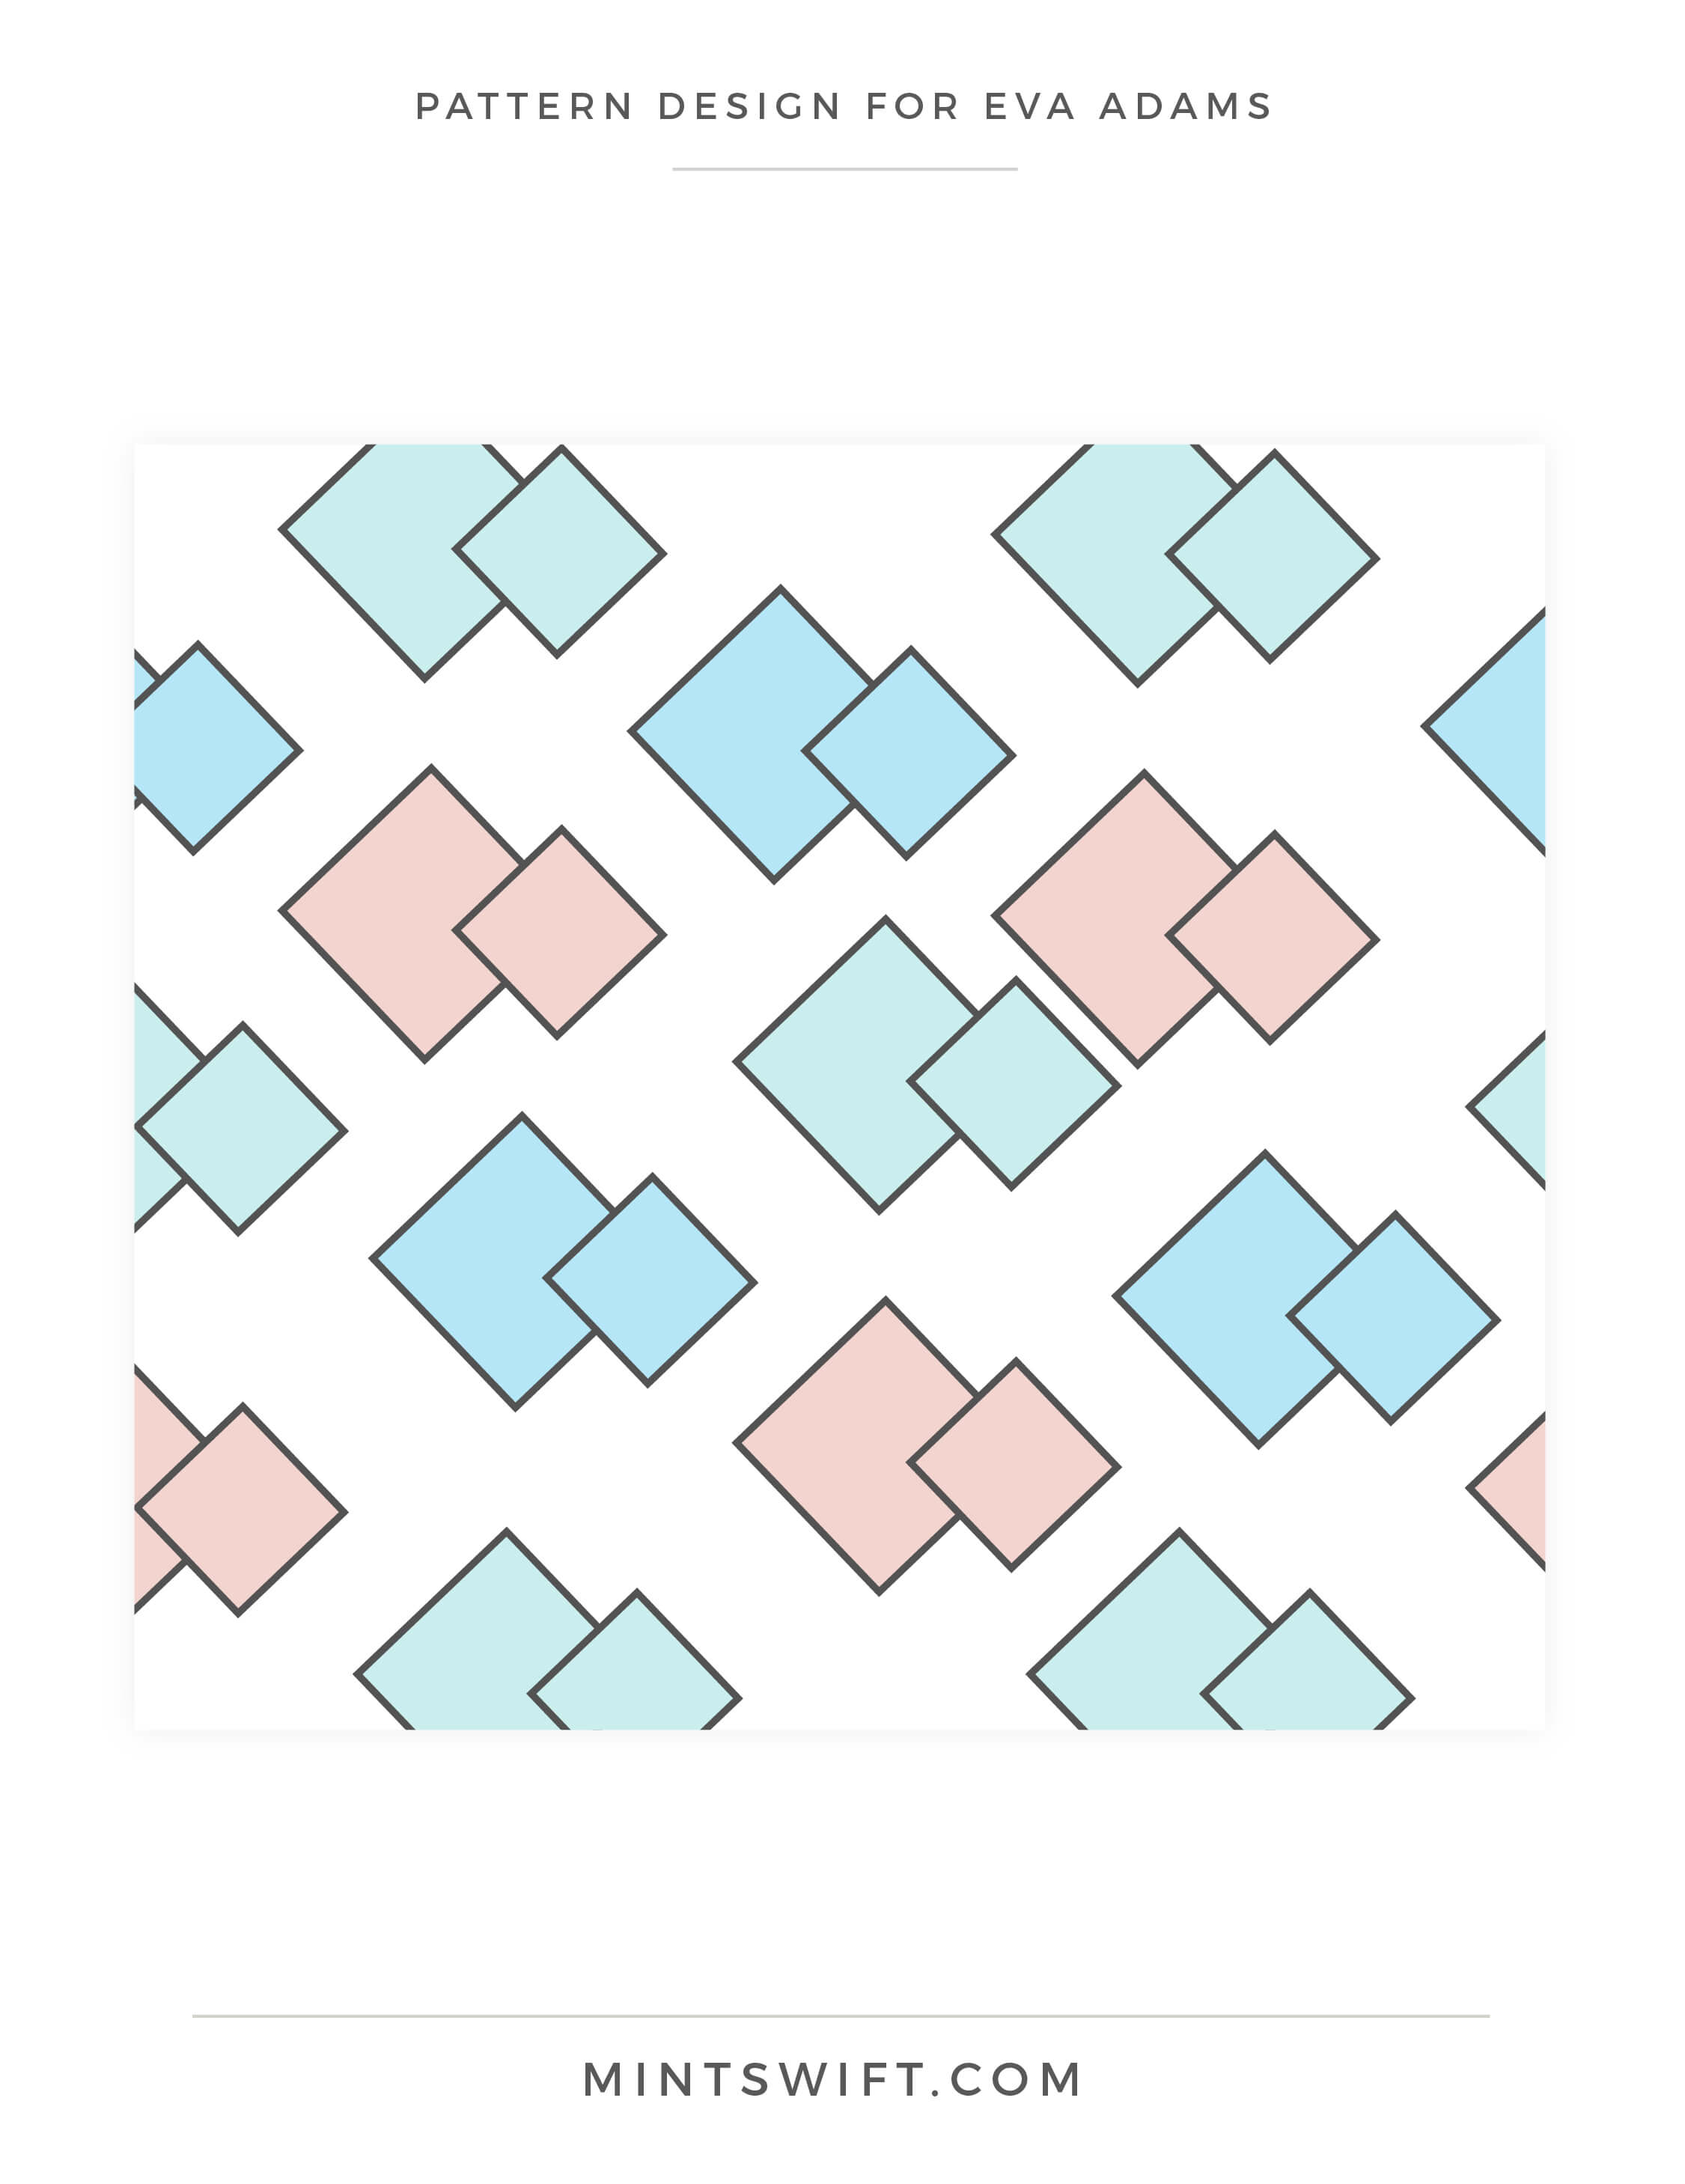 Eva Adams - Pattern design - MintSwift